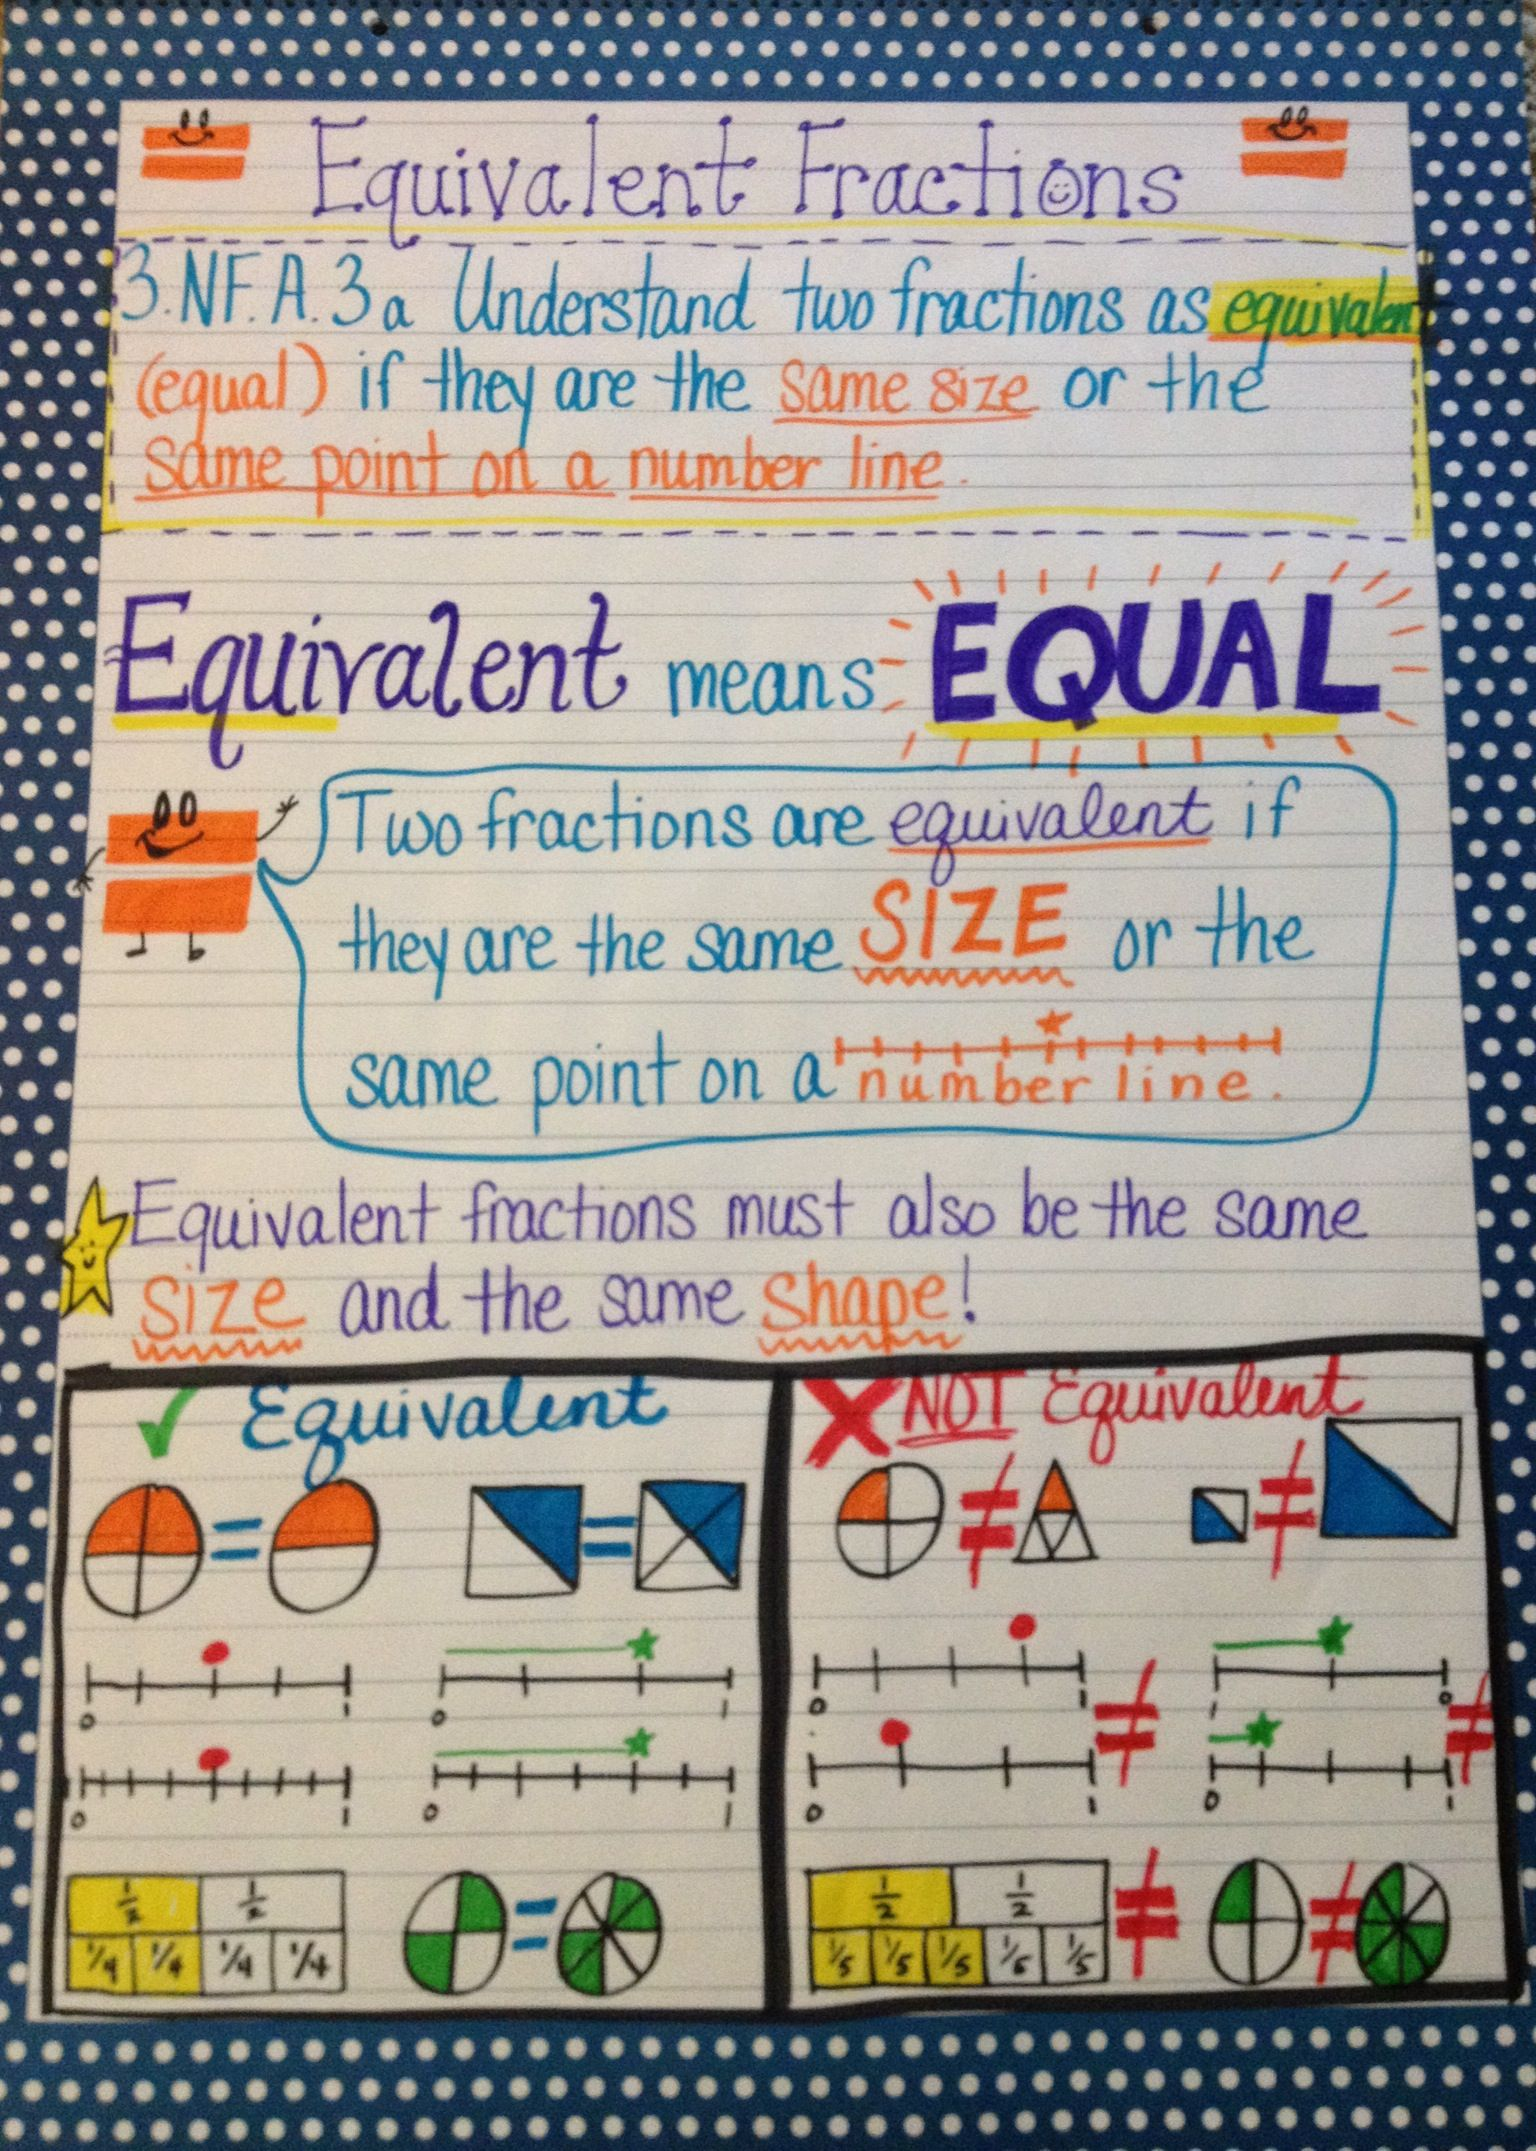 Equivalent Fraction Anchor Chart 3 A 3a